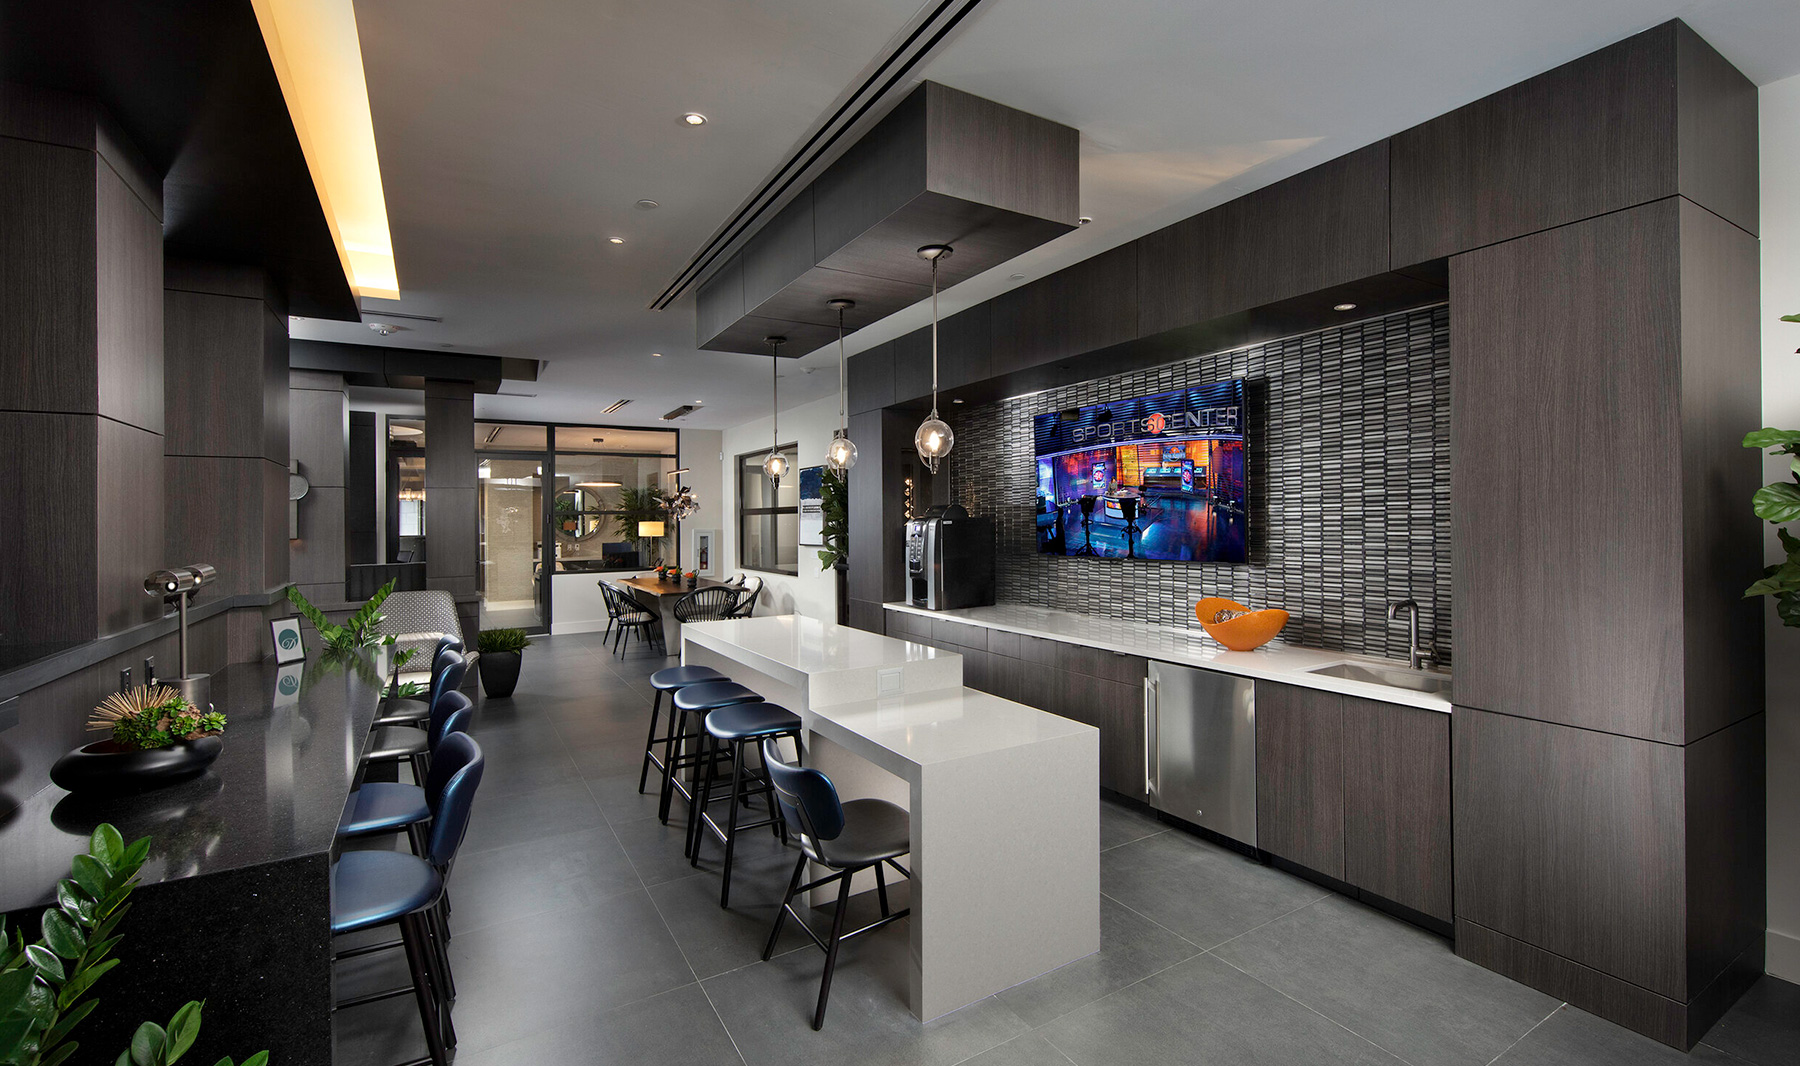 Hubbardton Forge Commercial Lighting